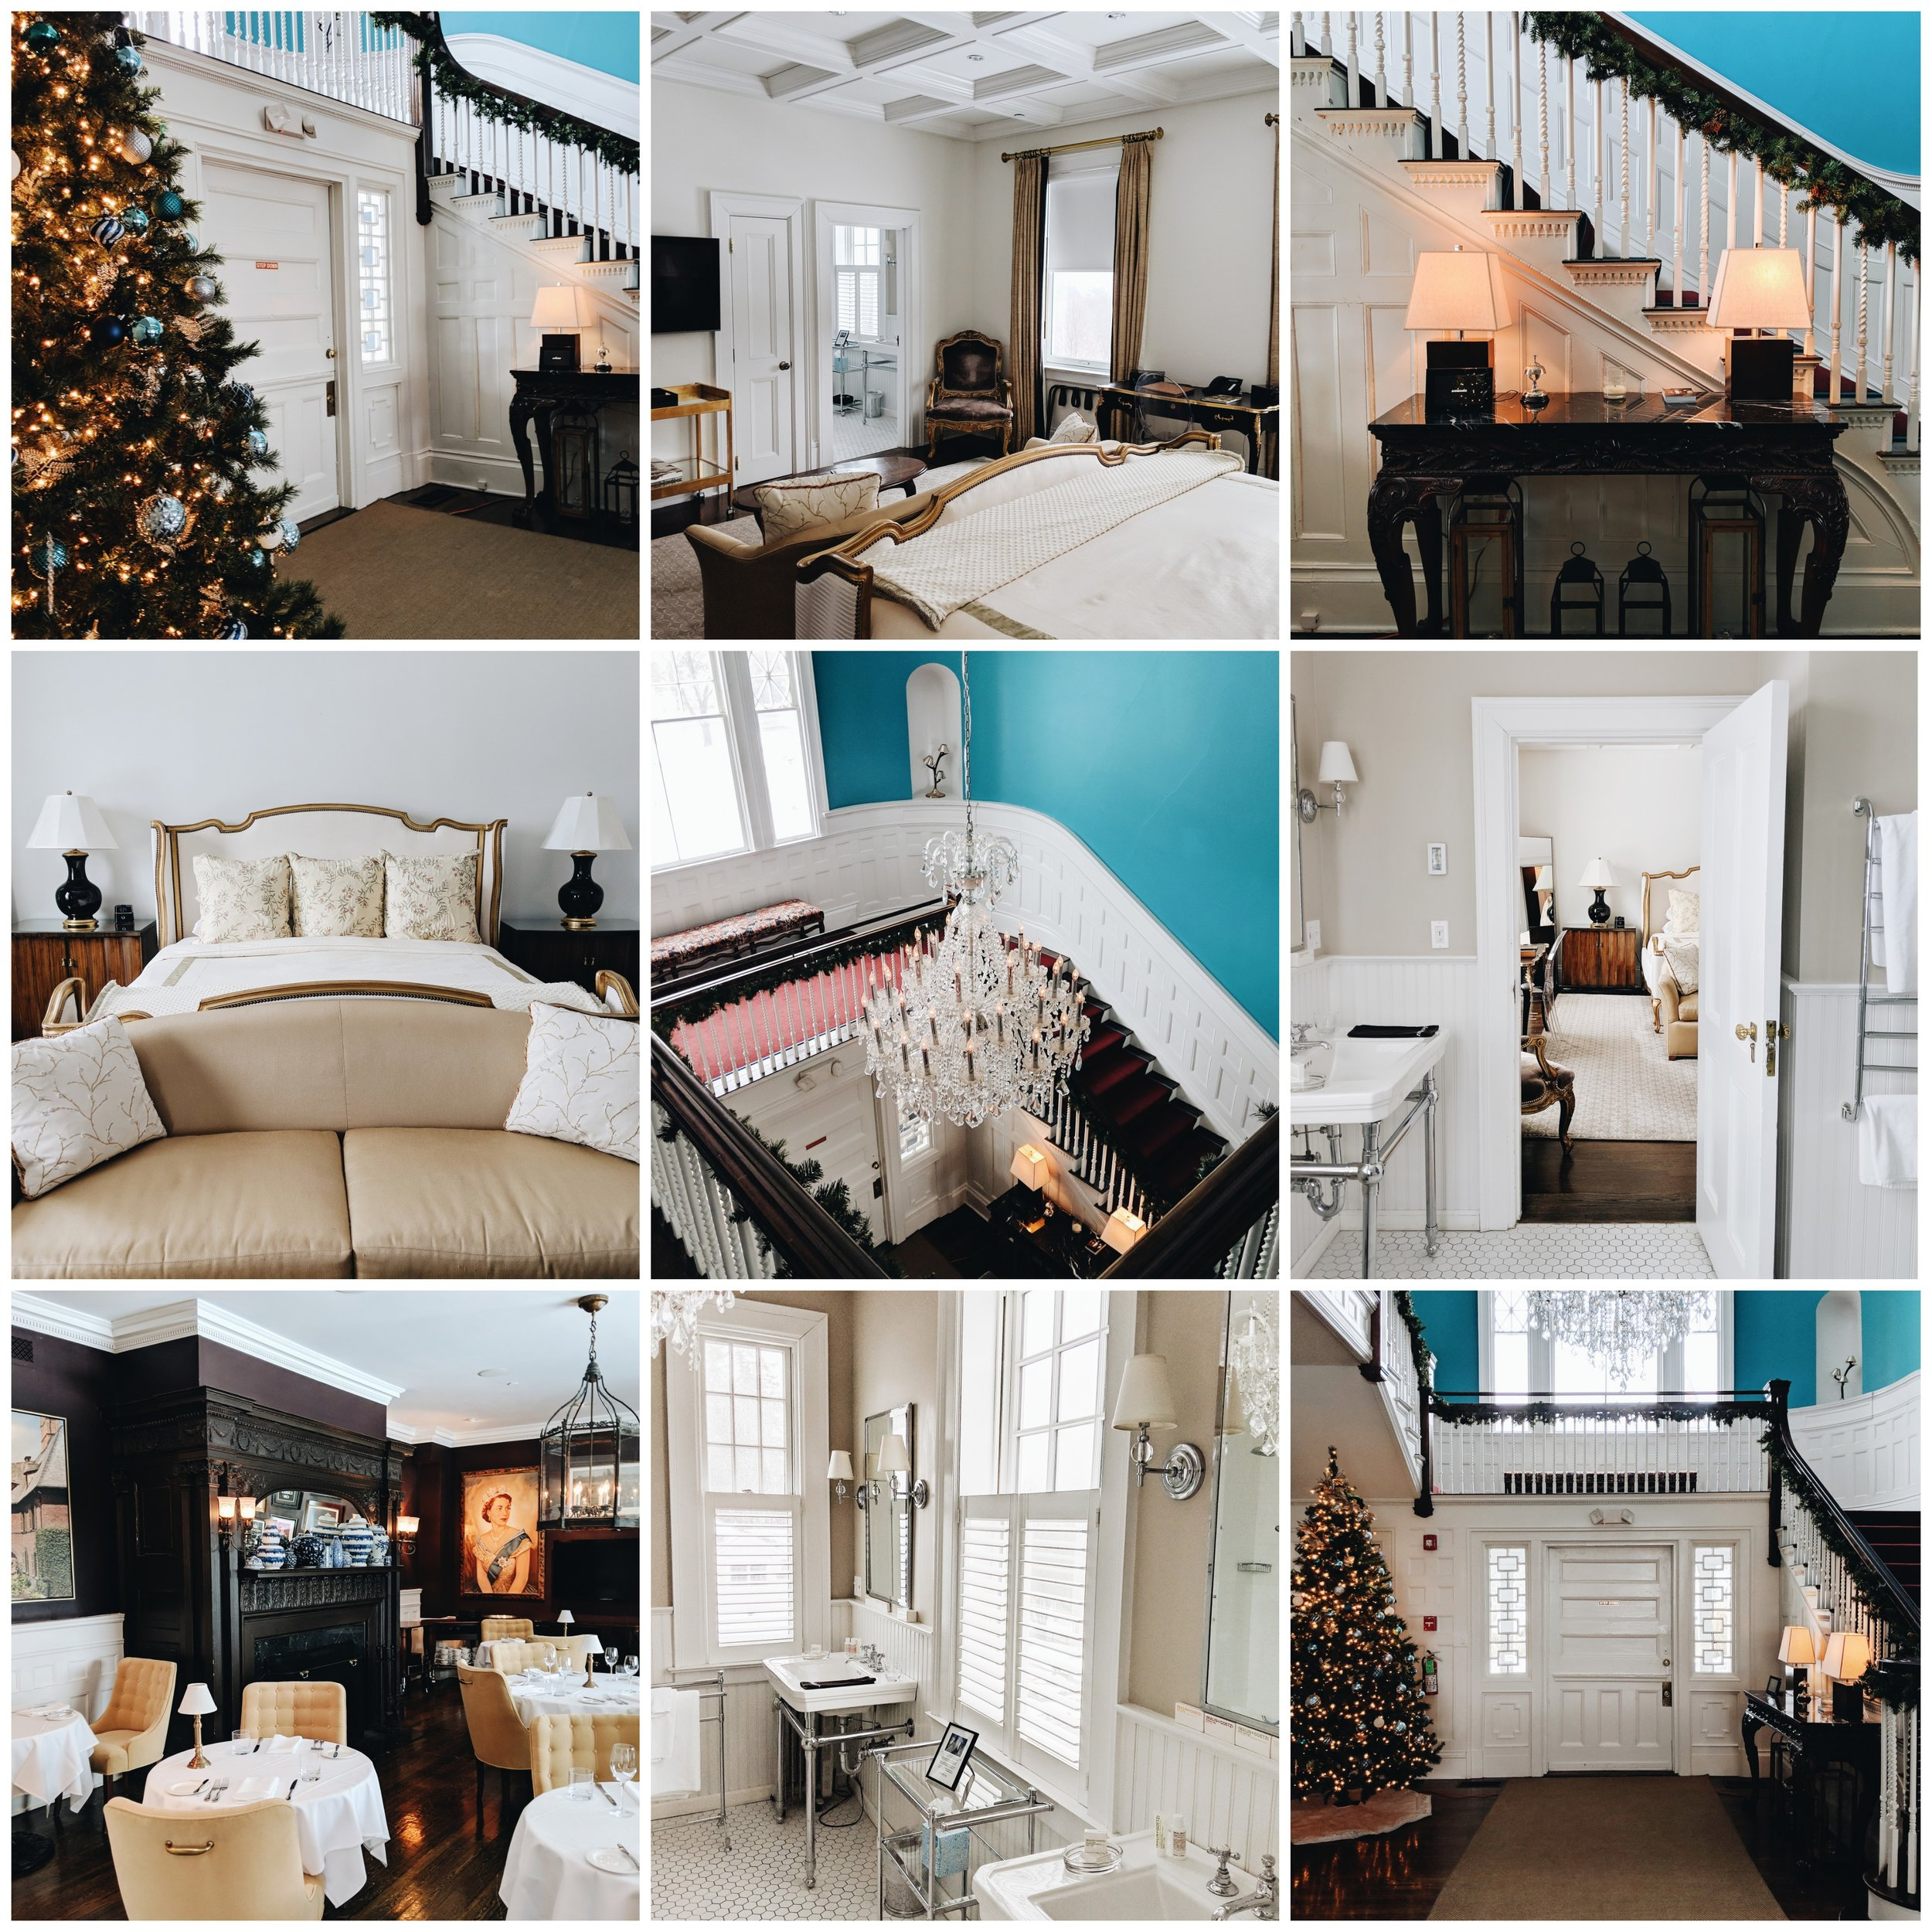 Produced, designed, and photographed lifestyle and company culture for special holiday promotion and marketing across social media and advertising channels.